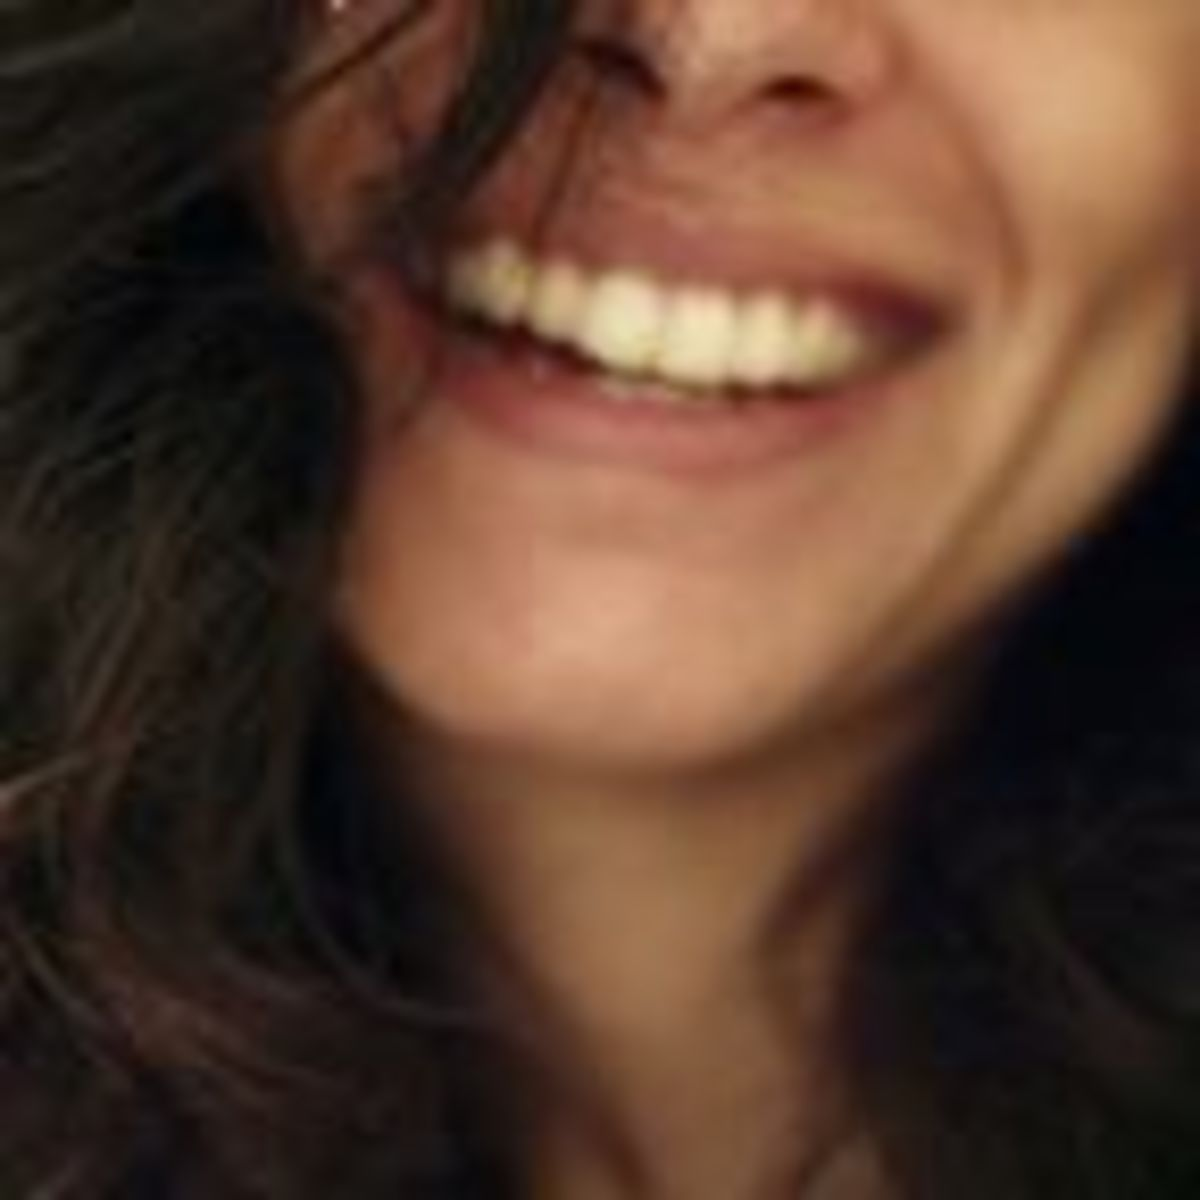 Why Do Some People Prefer Not to Smile? | Psychology Today